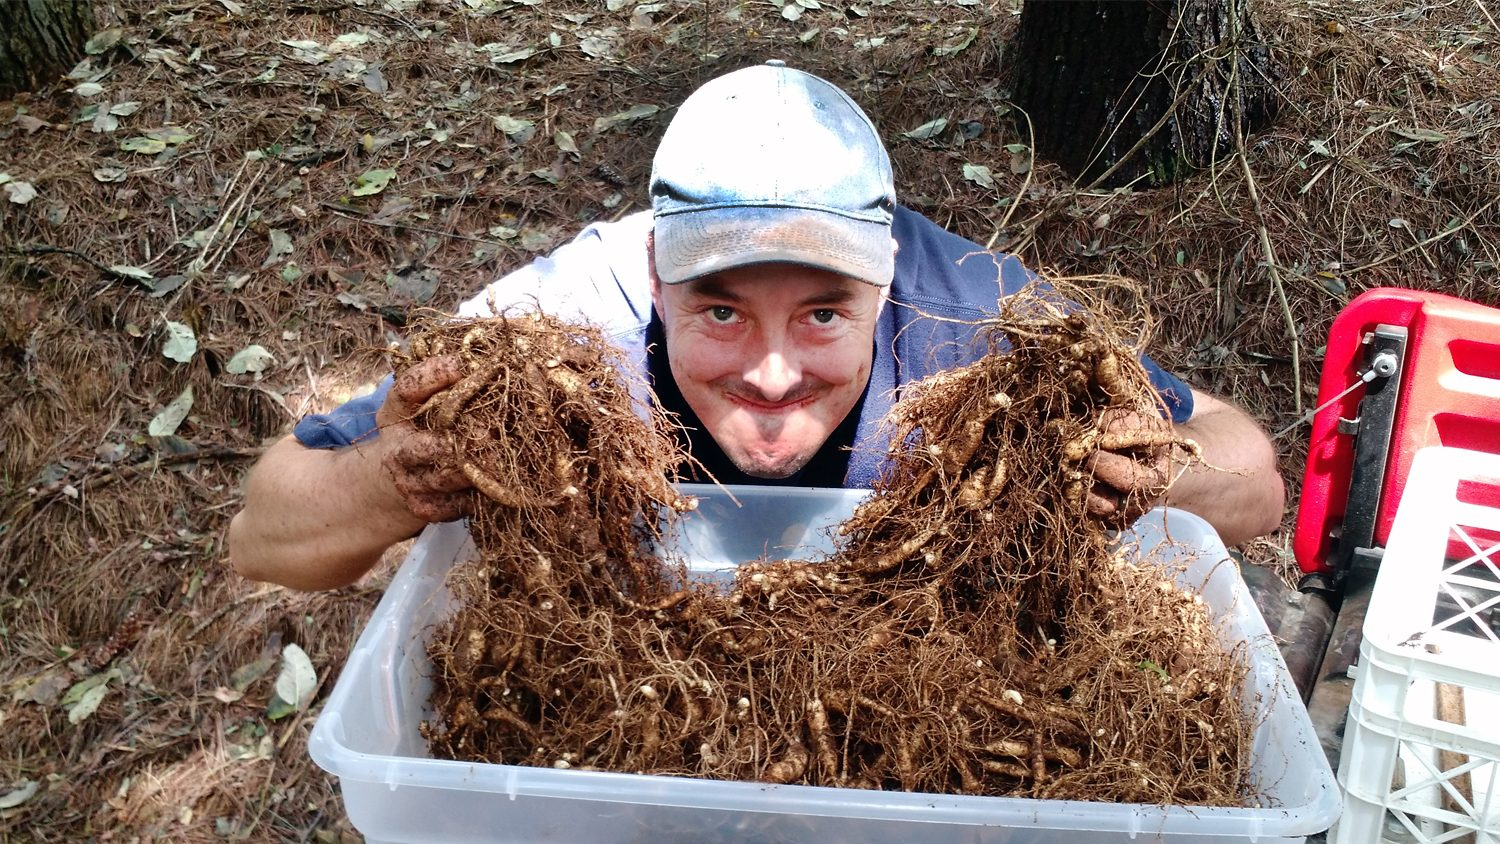 Watauga County NC Cooperative Extension Director Dr. Jim Hamilton poses with both hands full of harvested ginseng roots.